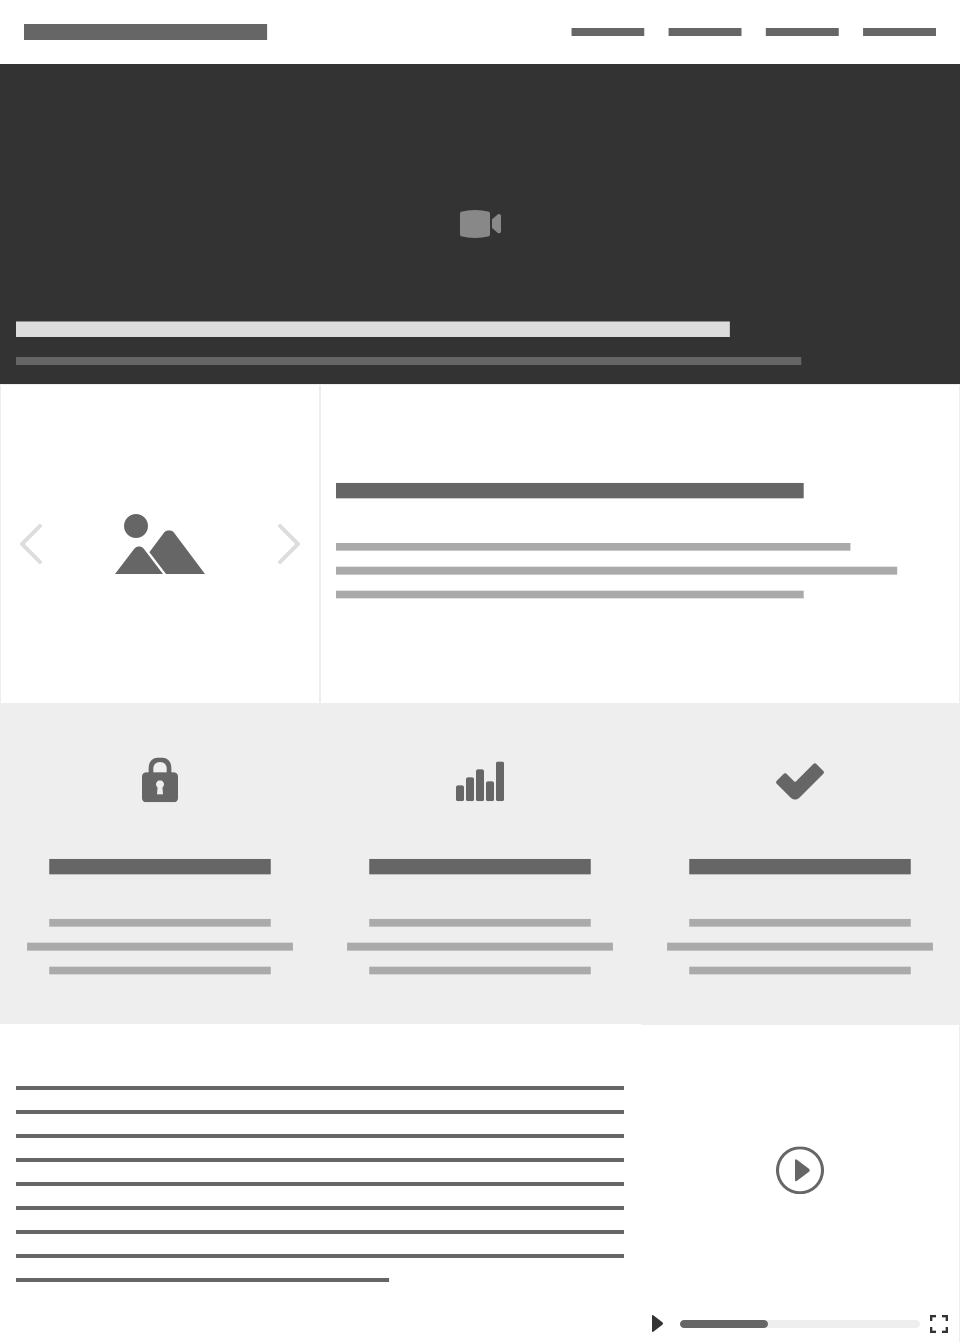 A wireframe of a landing page. At the top is a navigation bar with a left-aligned title, and right-aligned links followed by a hero block a video icon and heading at the bottom. Below is a carousel with a summary to the right of it, then three centered feature blocks with different icons (a lock, a chart, and a check mark), followed by a longer paragraph with a small video block to the right of it.